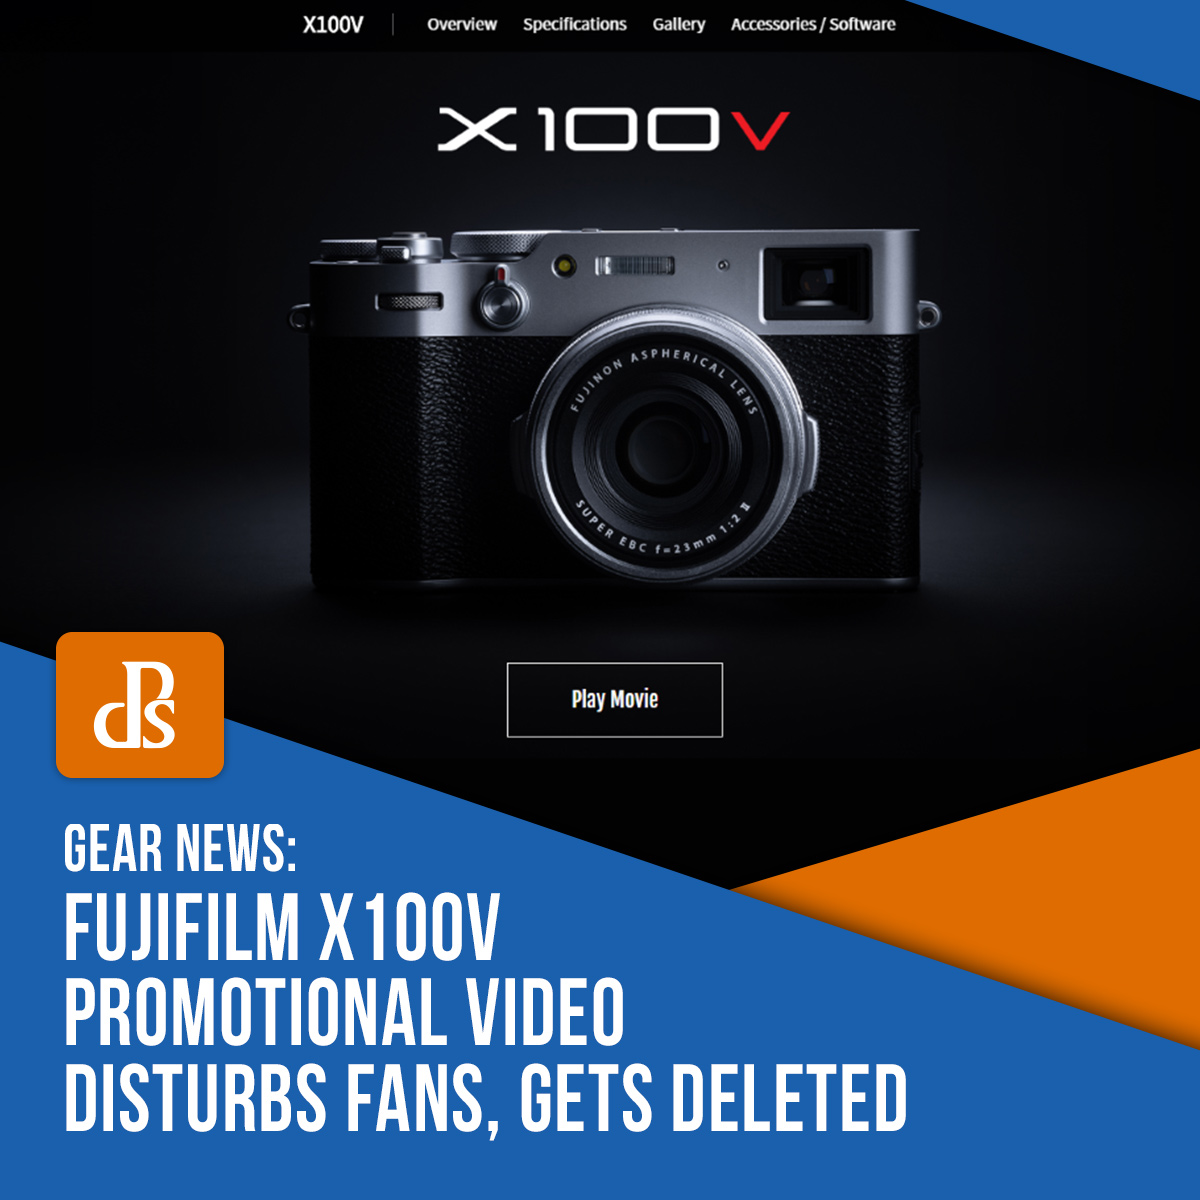 fujifilm-x100v-promotional-video